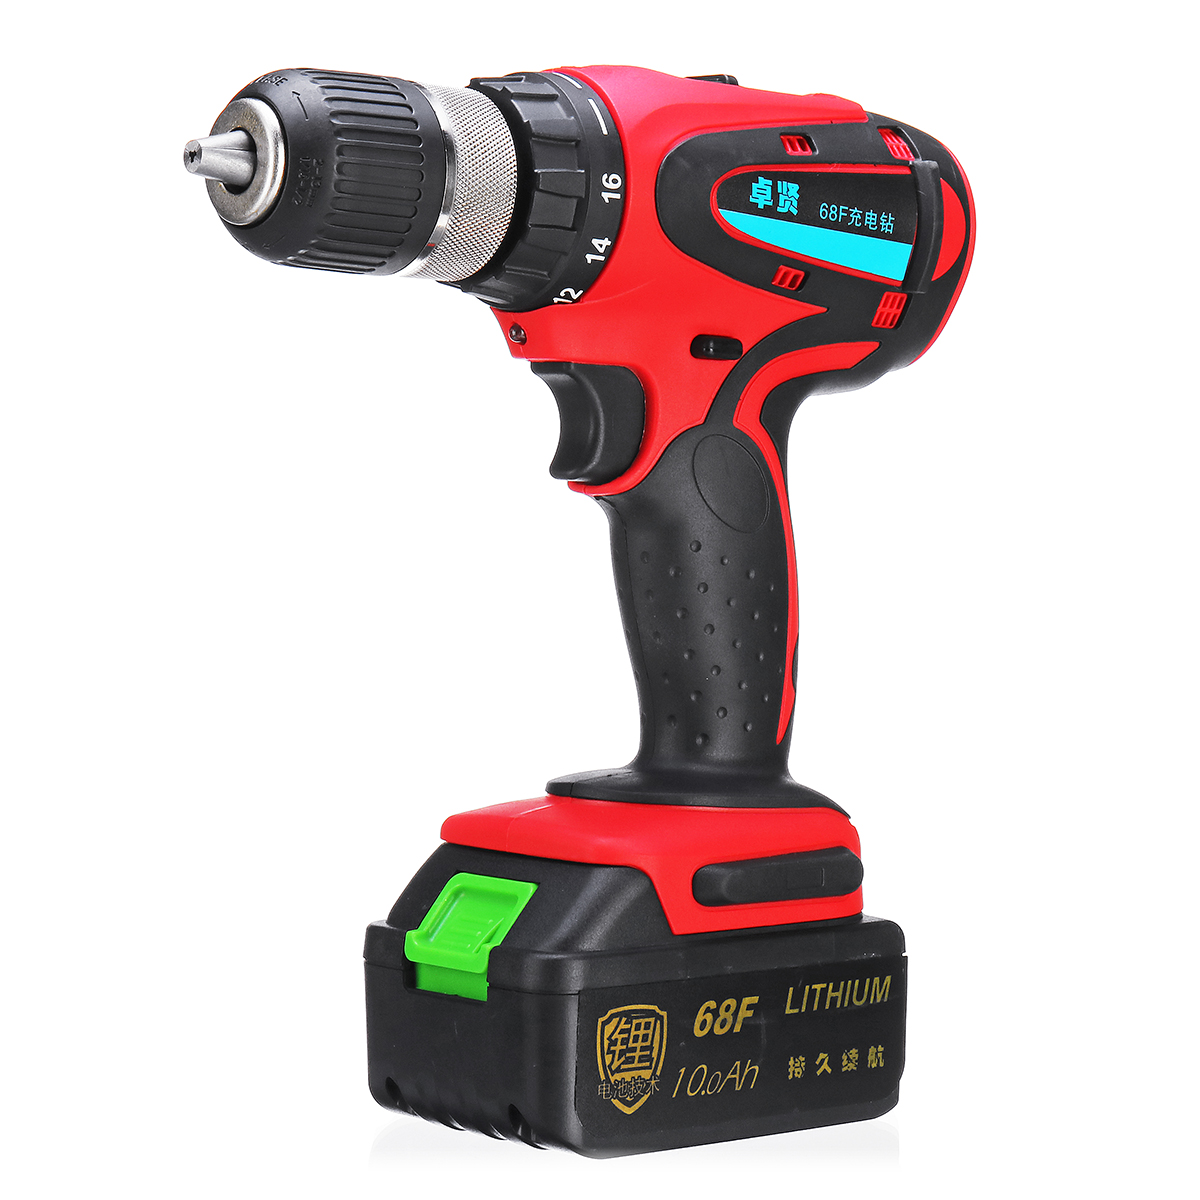 68V 10Ah Cordless Rechargeable Electric Drill 2 Speed Heavy Duty Torque Power Drills